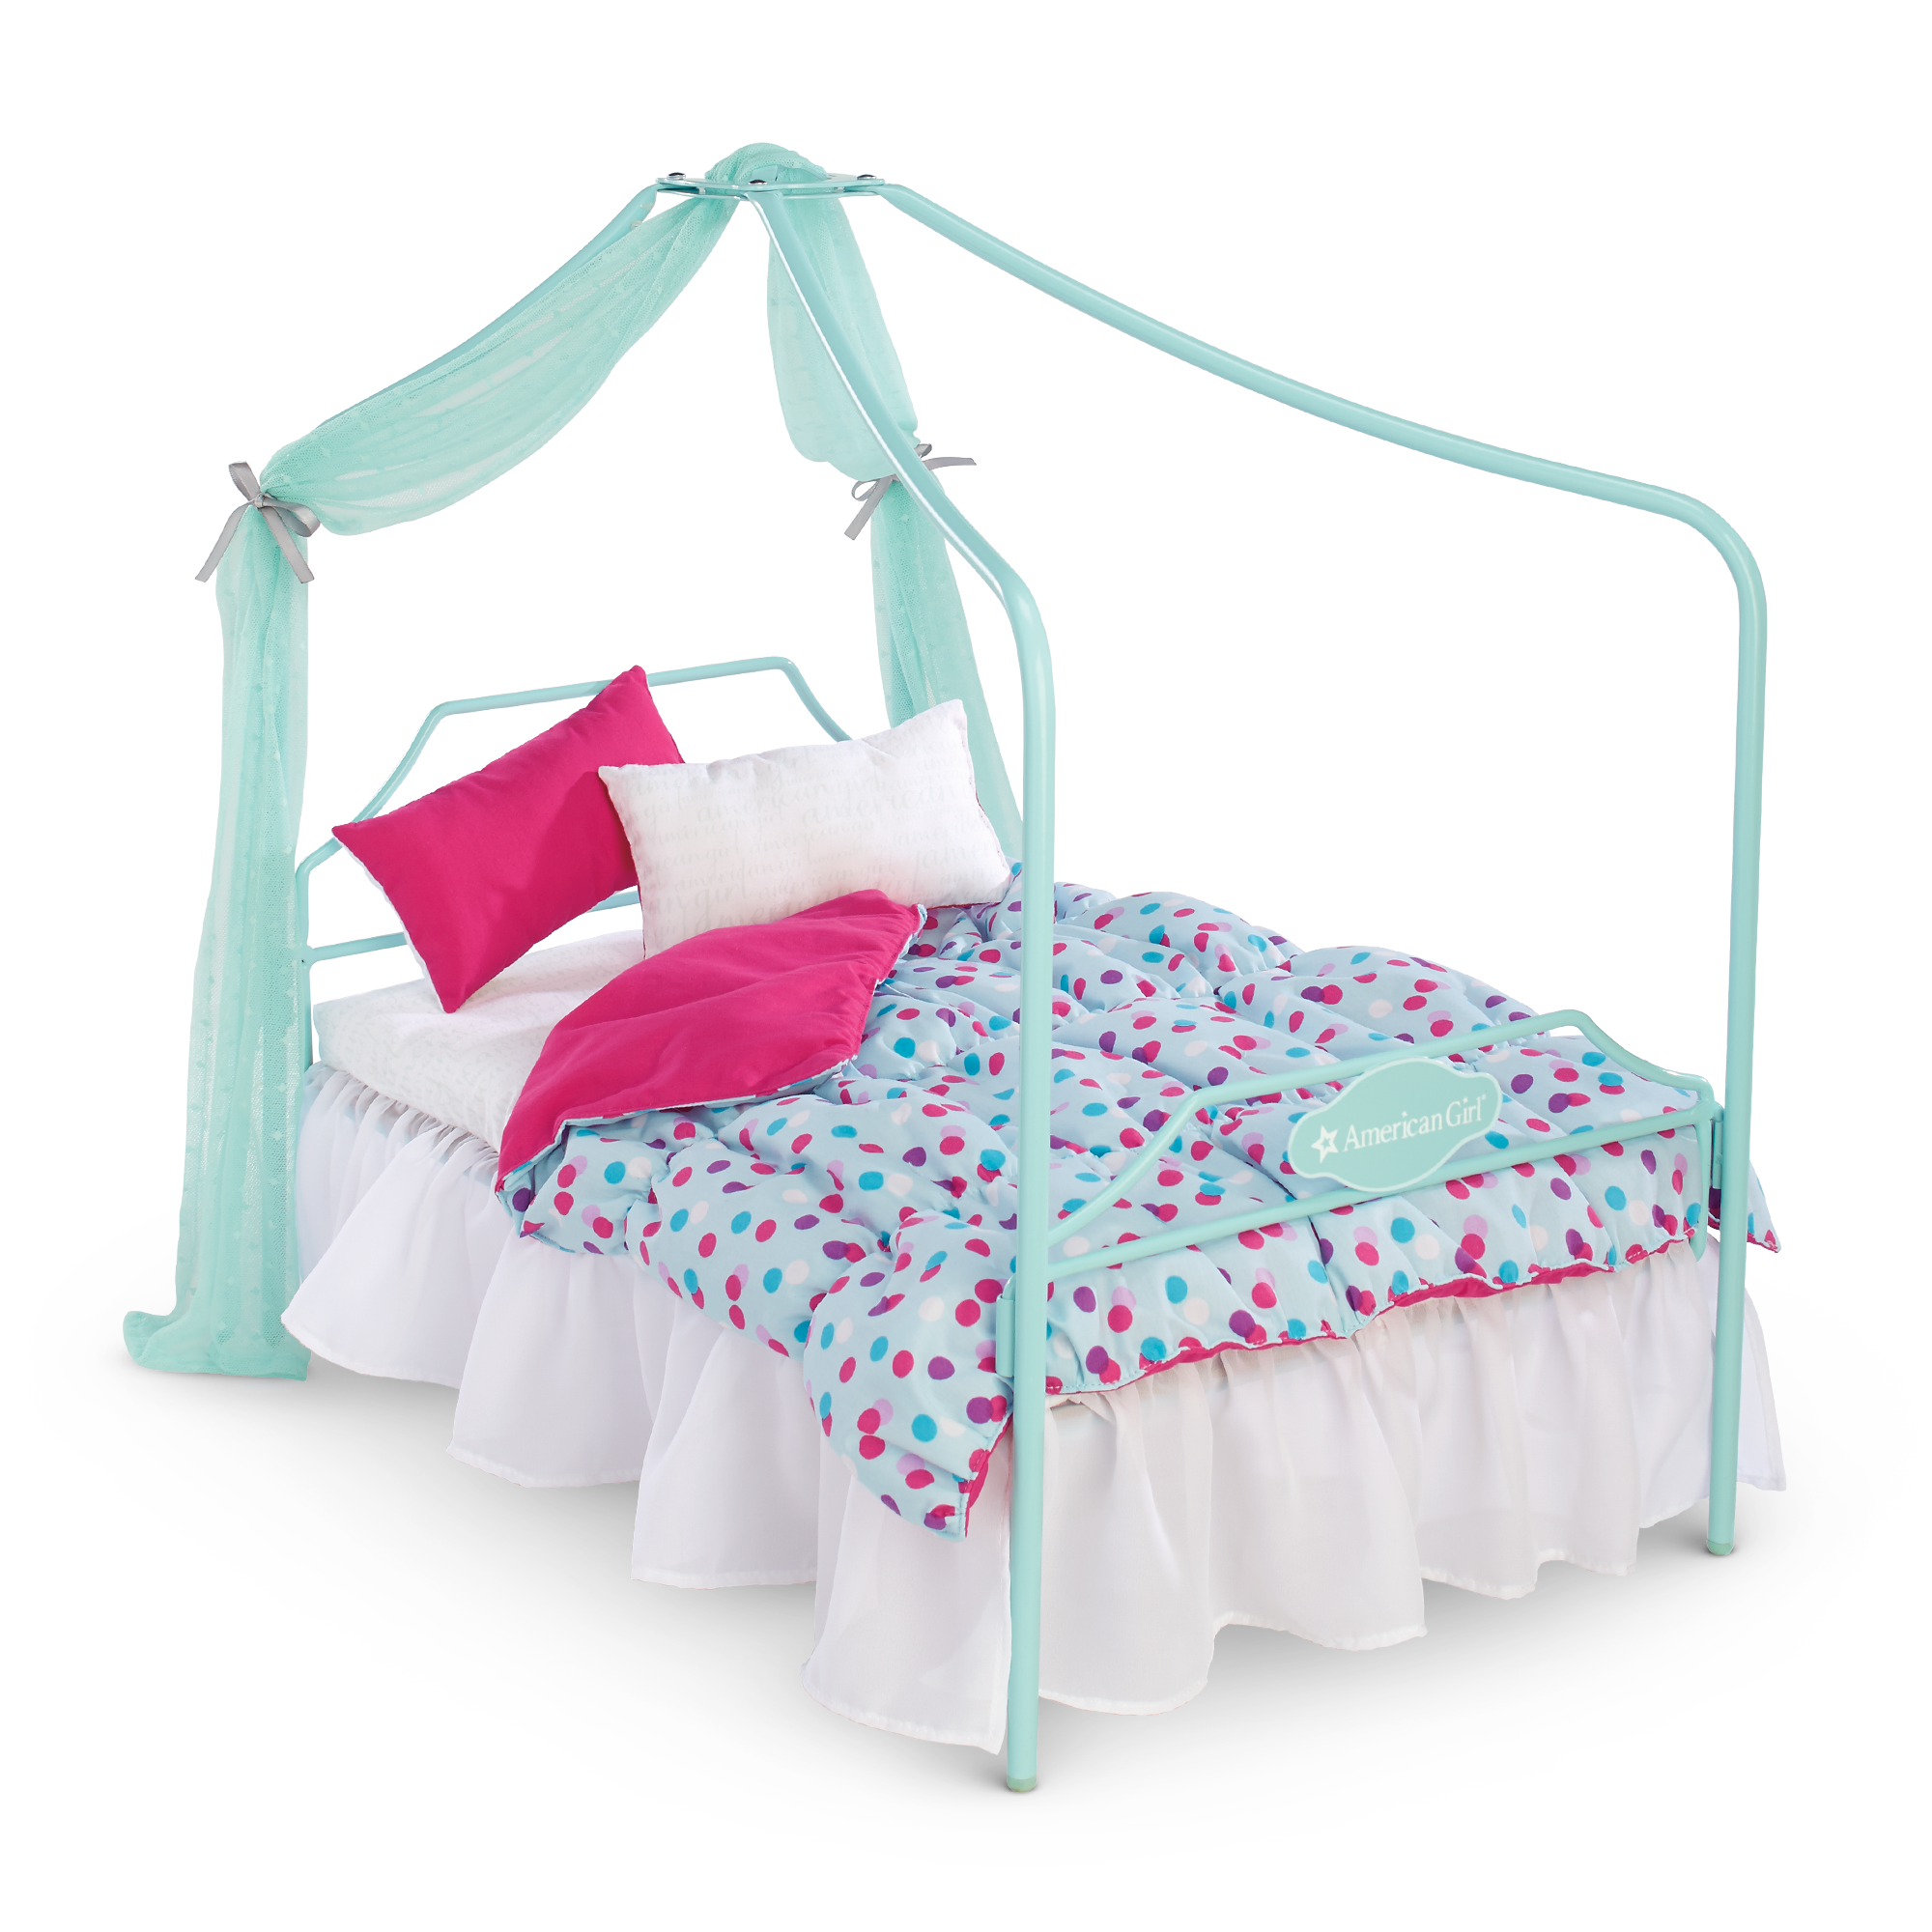 Image result for ag Canopy Bed & Bedding Set